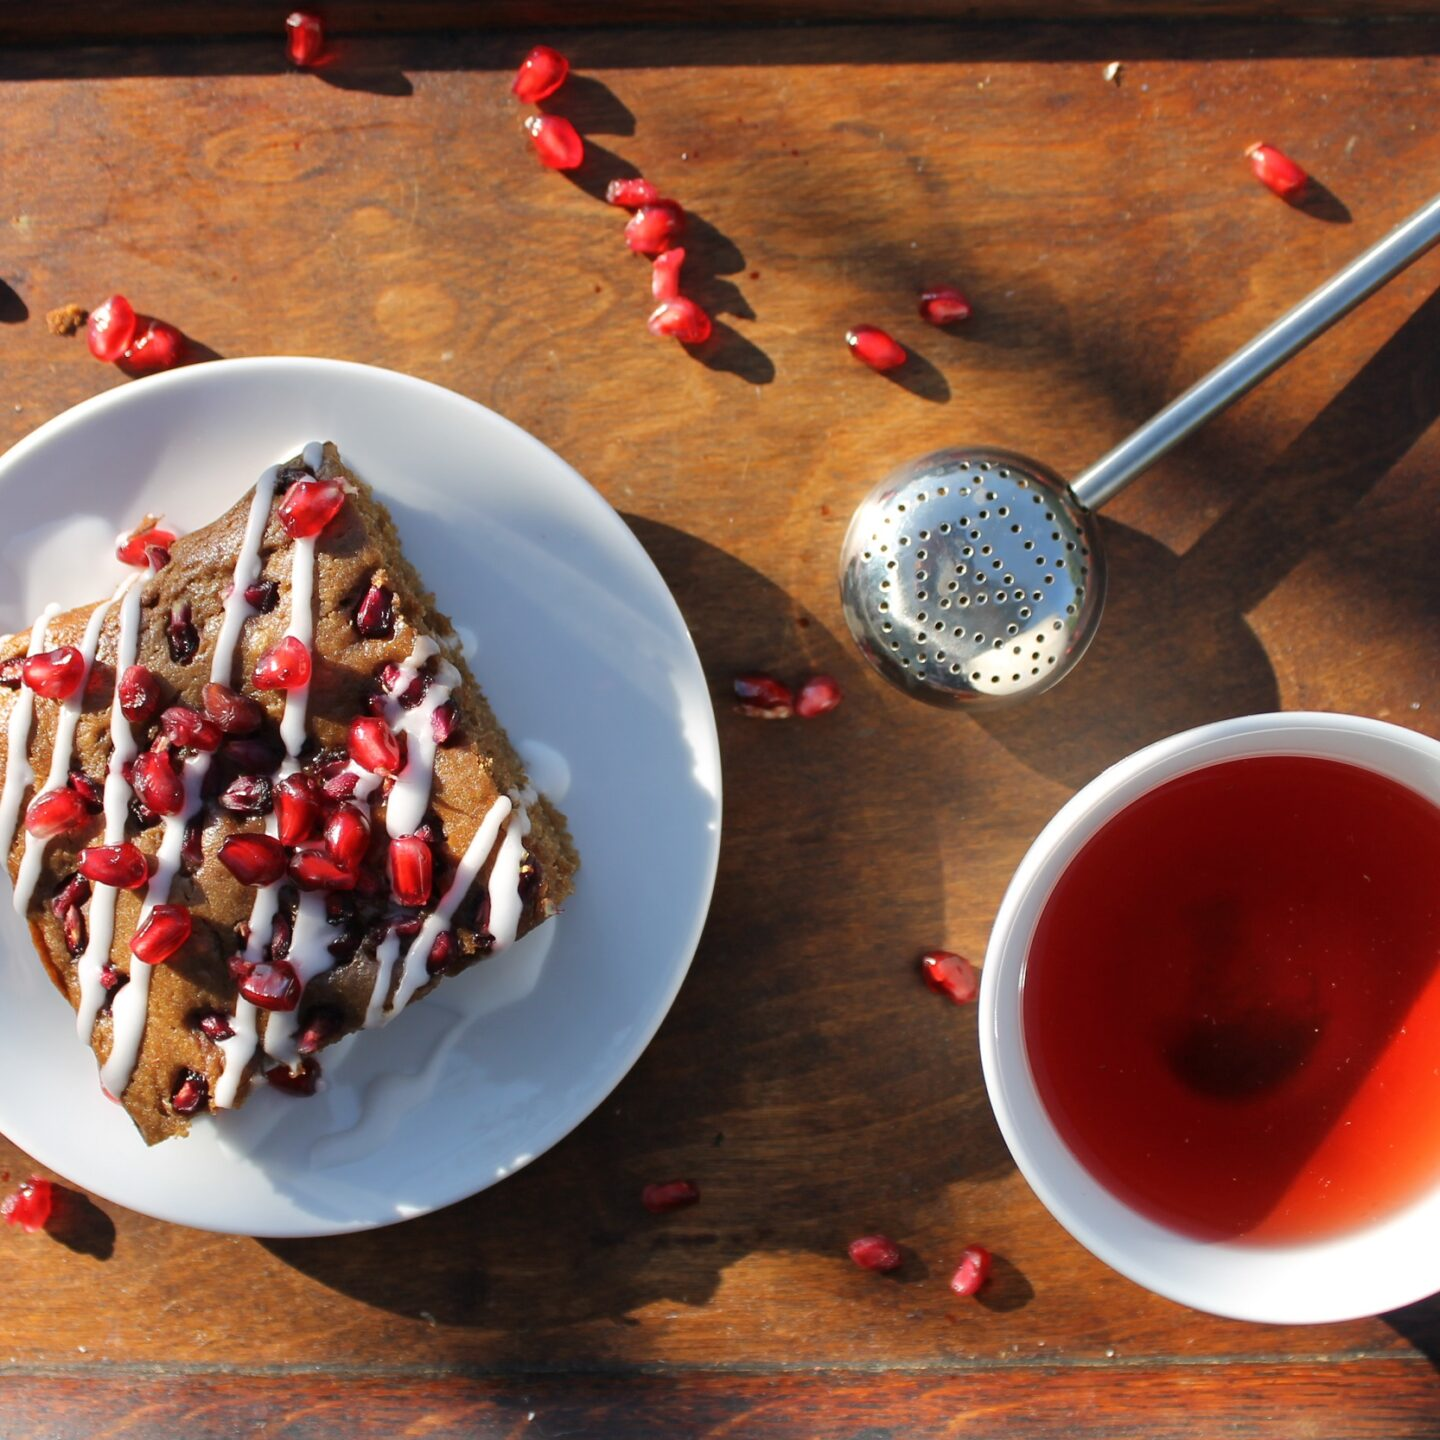 The 10 Best Hibiscus Teas for Hibi-Lovers